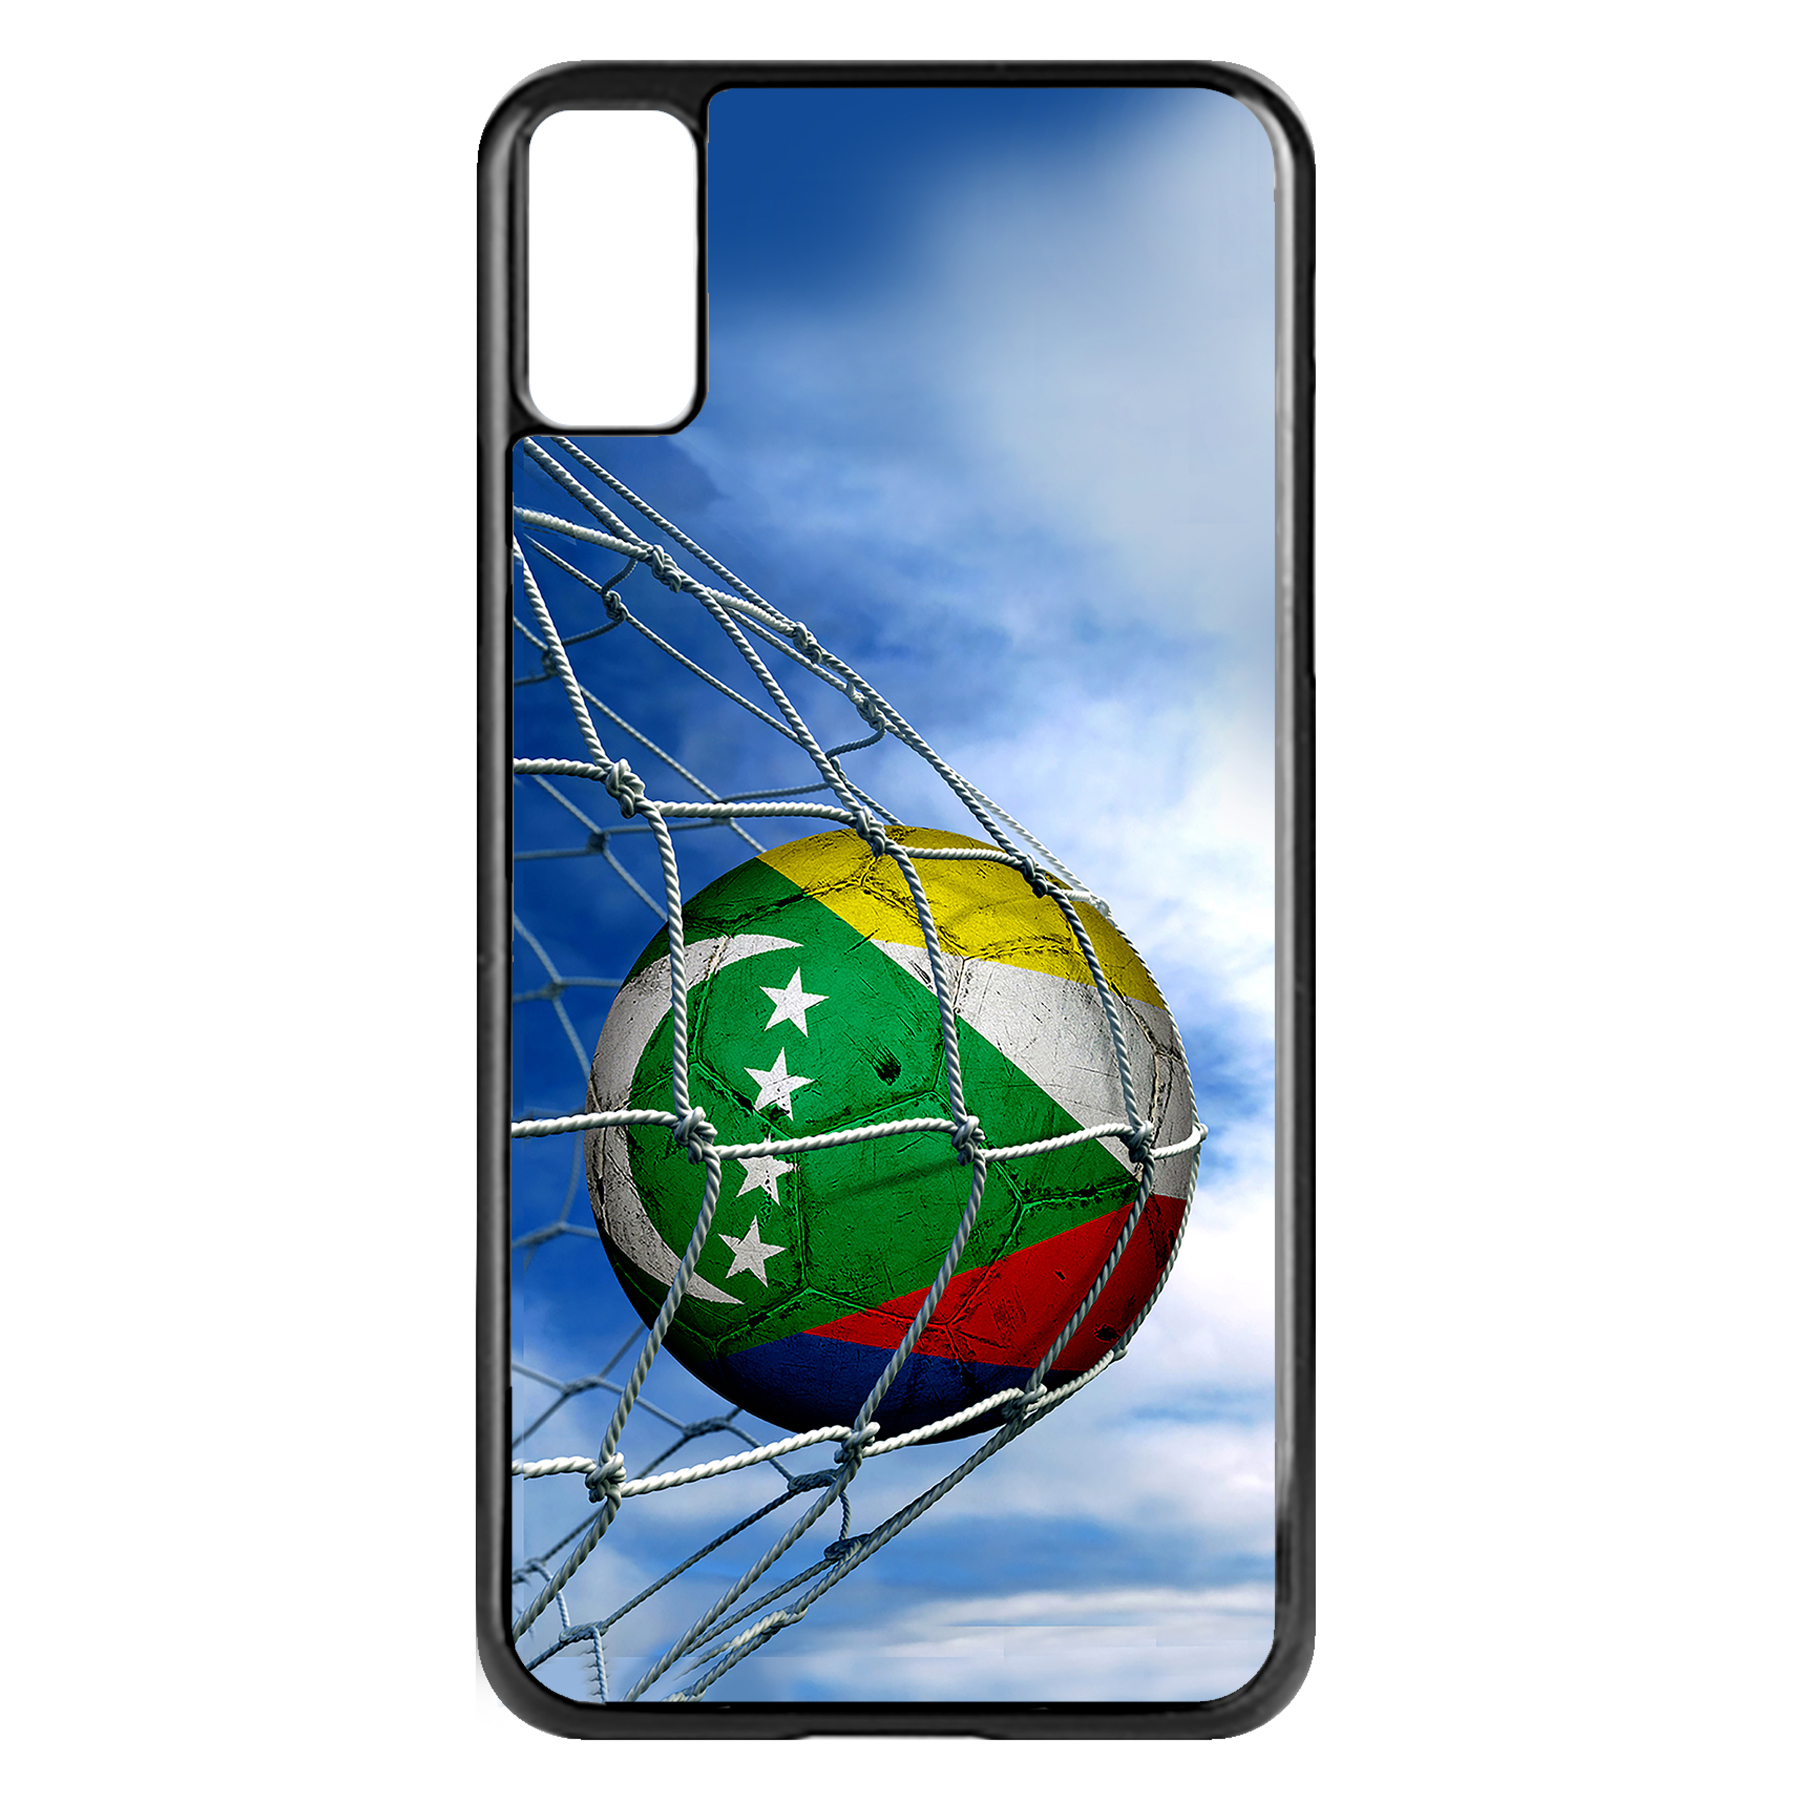 Apple-iPhone-Case-with-Flag-of-Comoros-Comorian-Many-Design-Options thumbnail 90